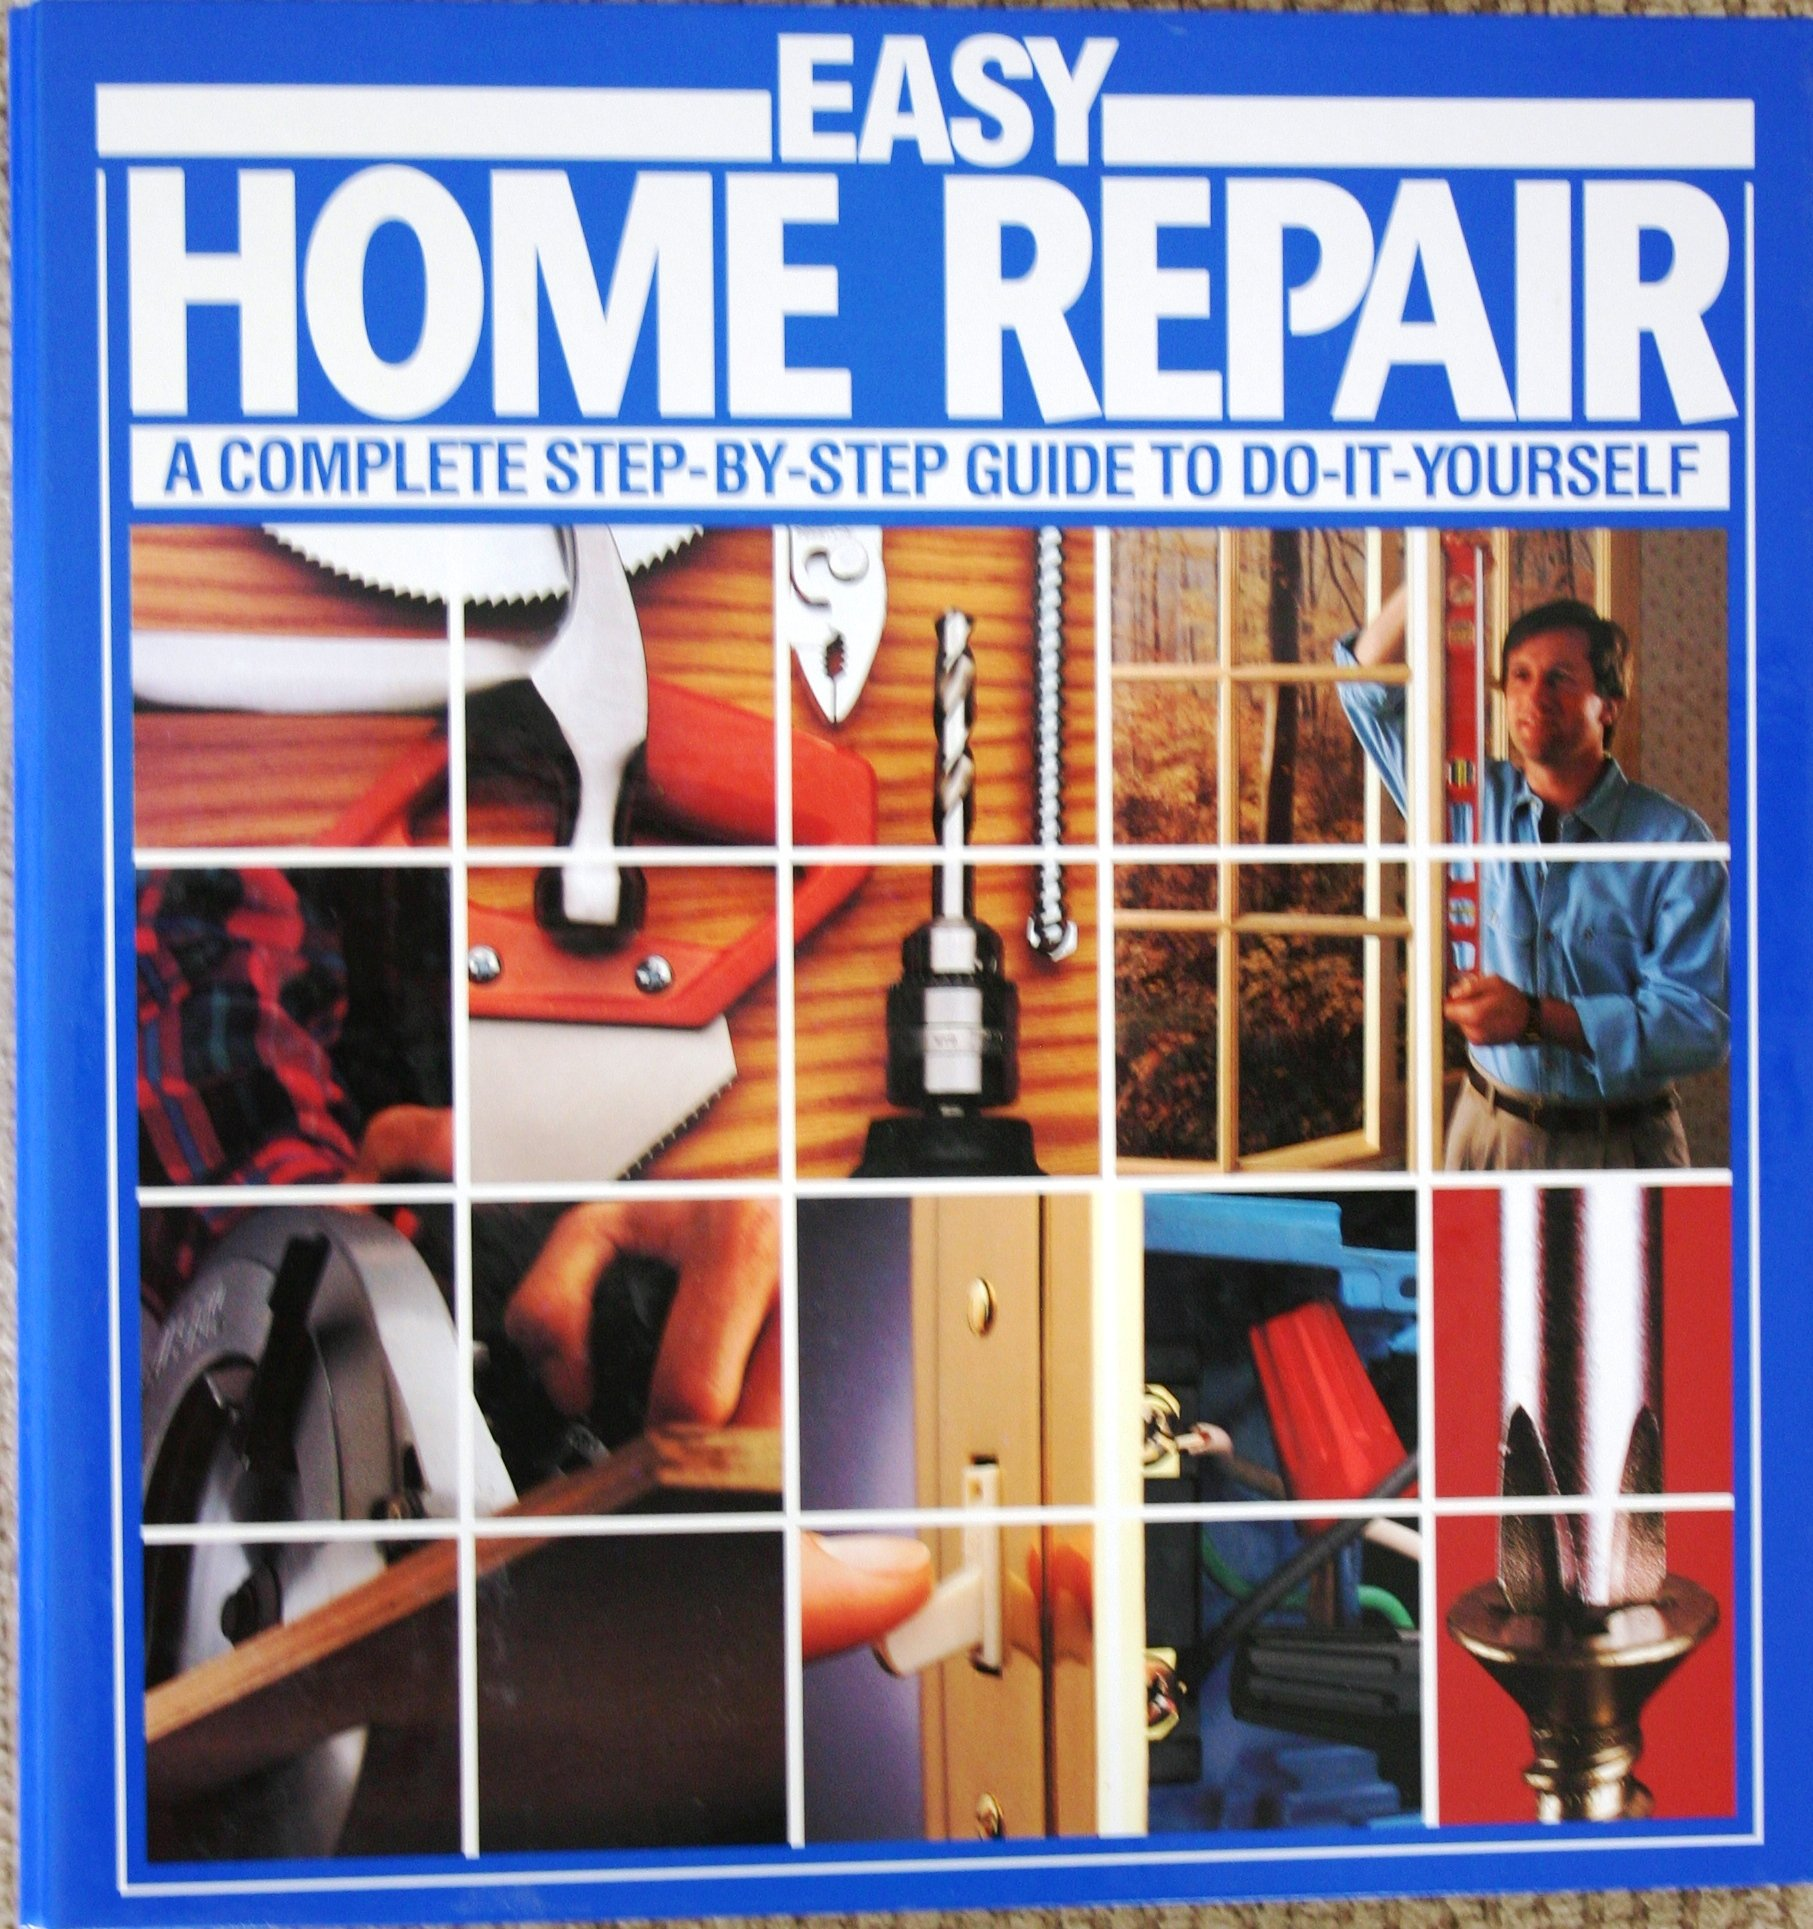 Easy home repair a complete step by step guide to do it yourself easy home repair a complete step by step guide to do it yourself bob anderson amazon books solutioingenieria Images